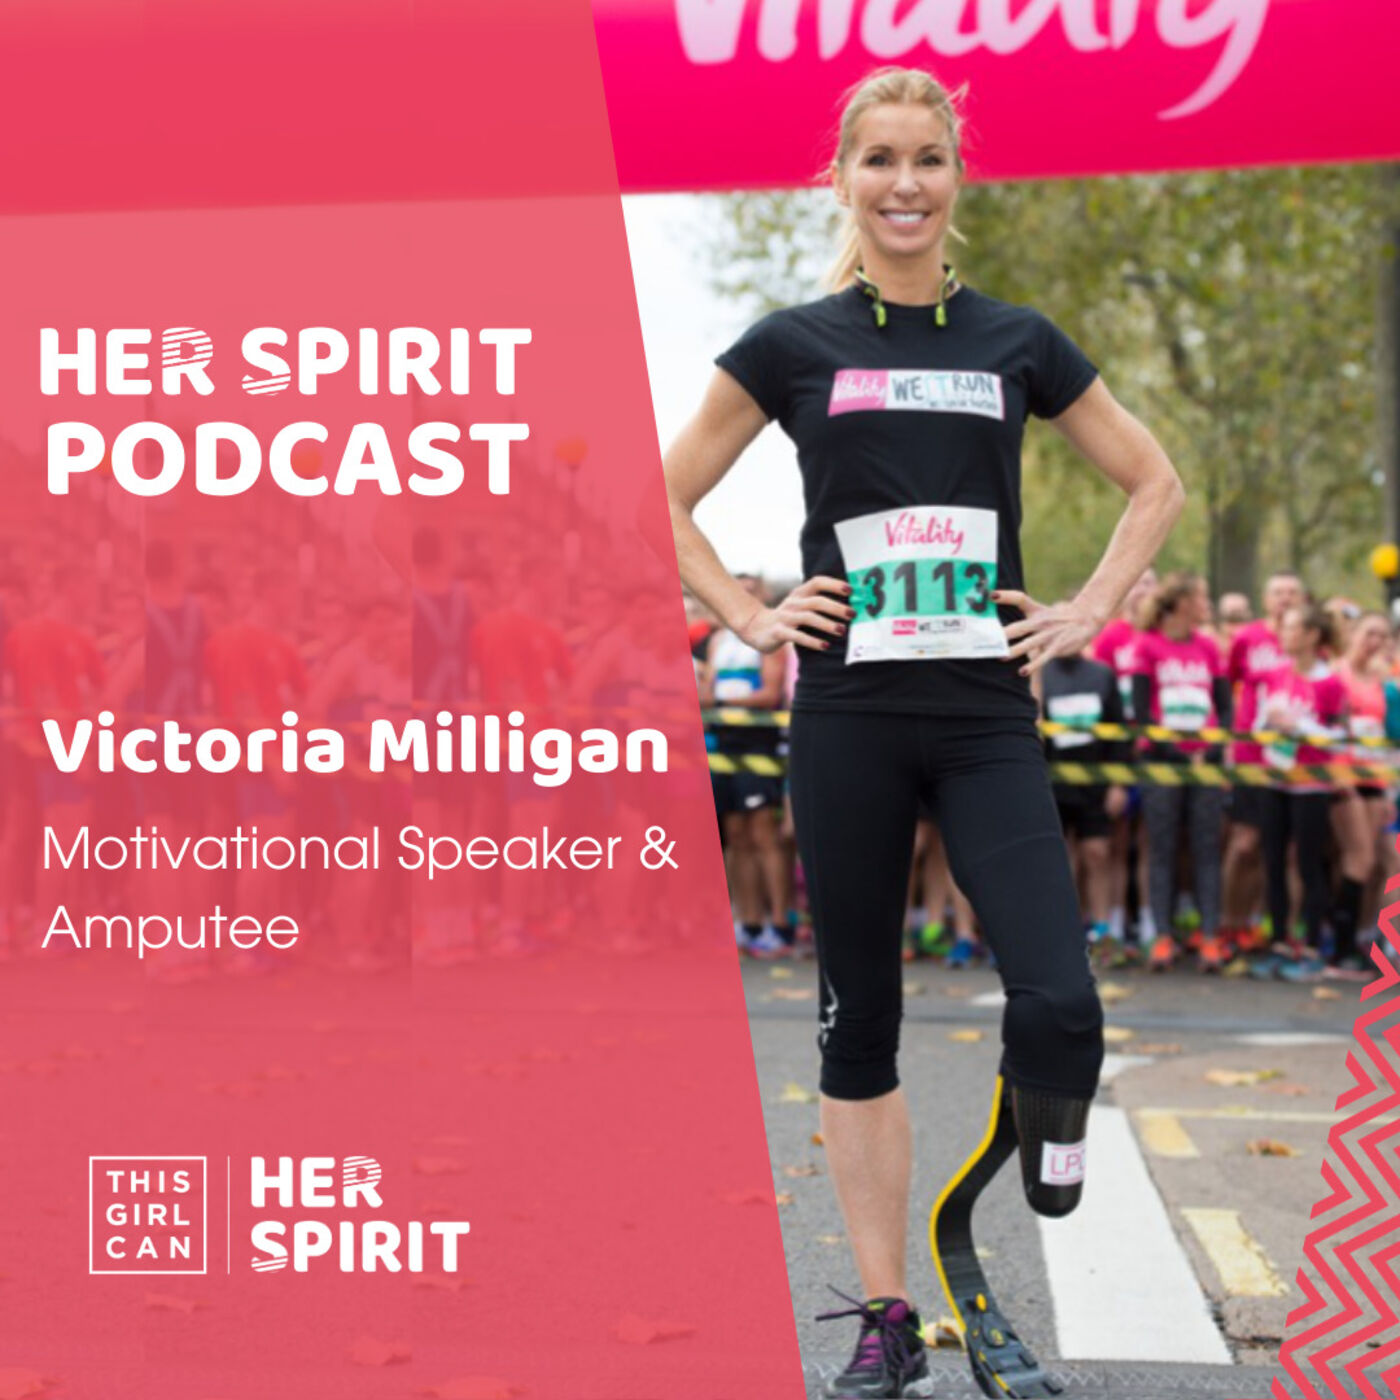 Motivational speaker and amputee Victoria Milligan talks openly to Annie and Louise about her accident in 2013 where she lost her husband, daughter and a leg in a speedboat accident.